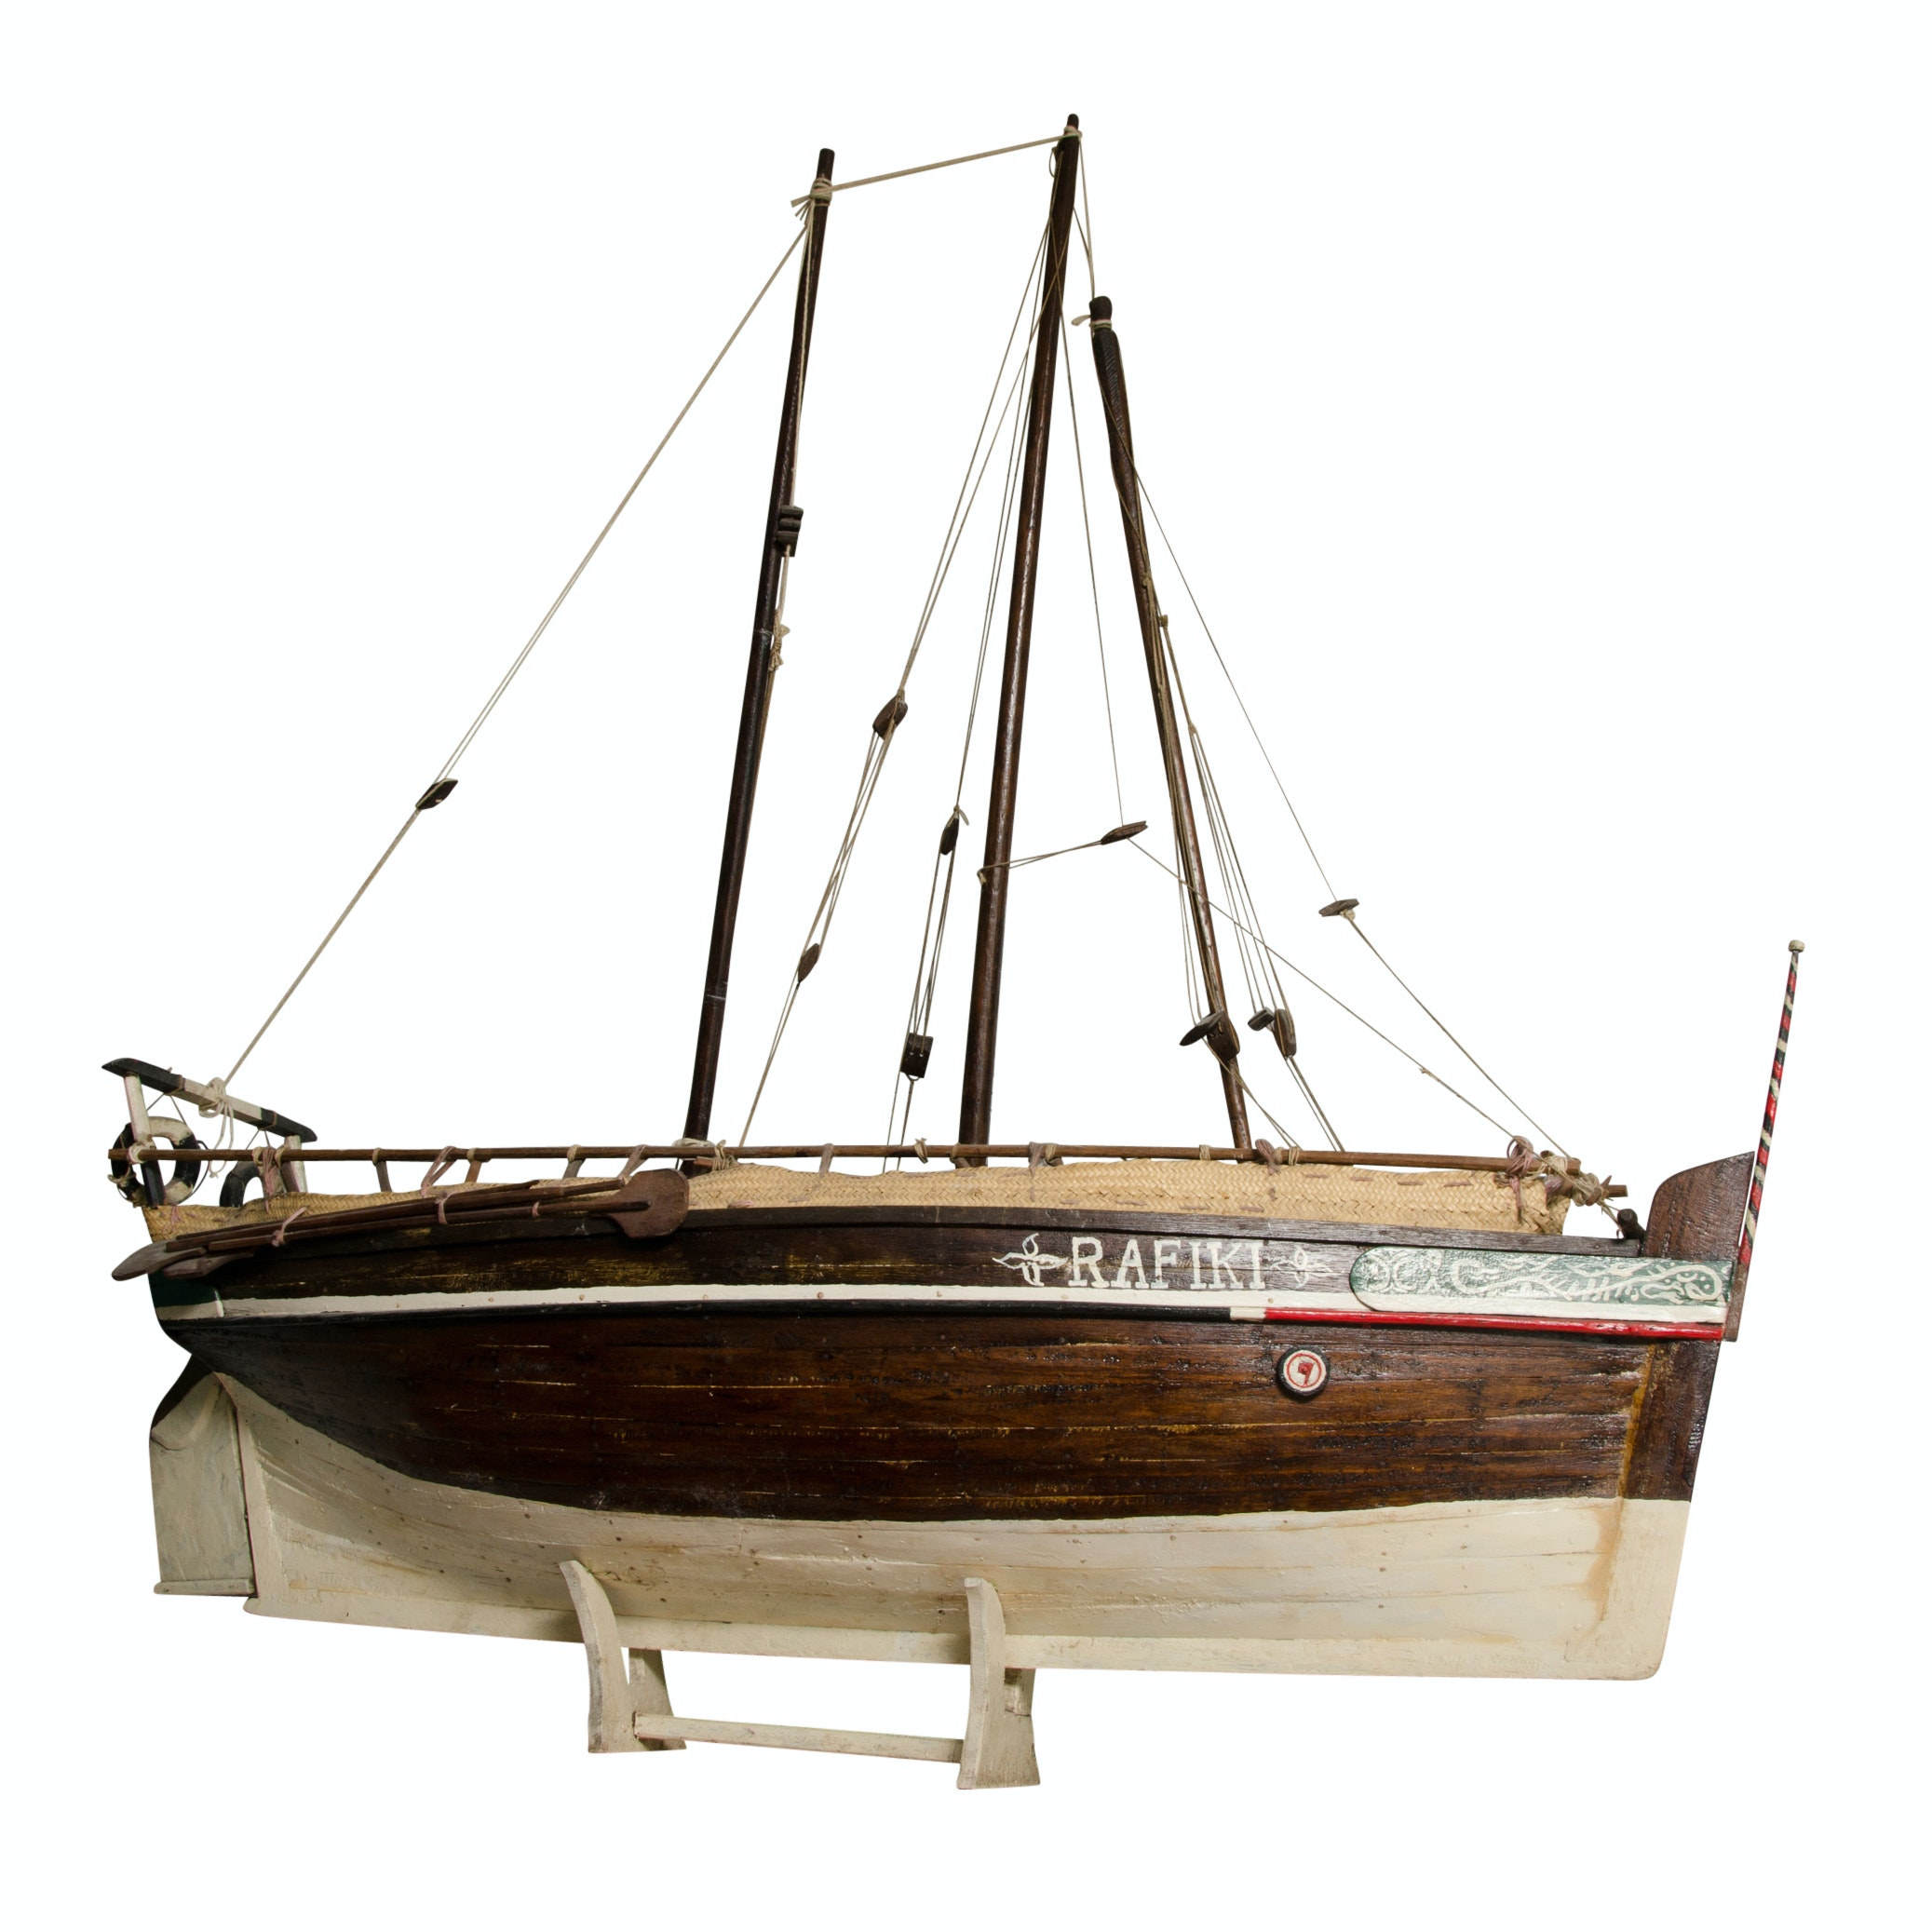 """Hand-Painted Model of Three-Masted Sailing Ship """"Rafiki"""" on Stand"""